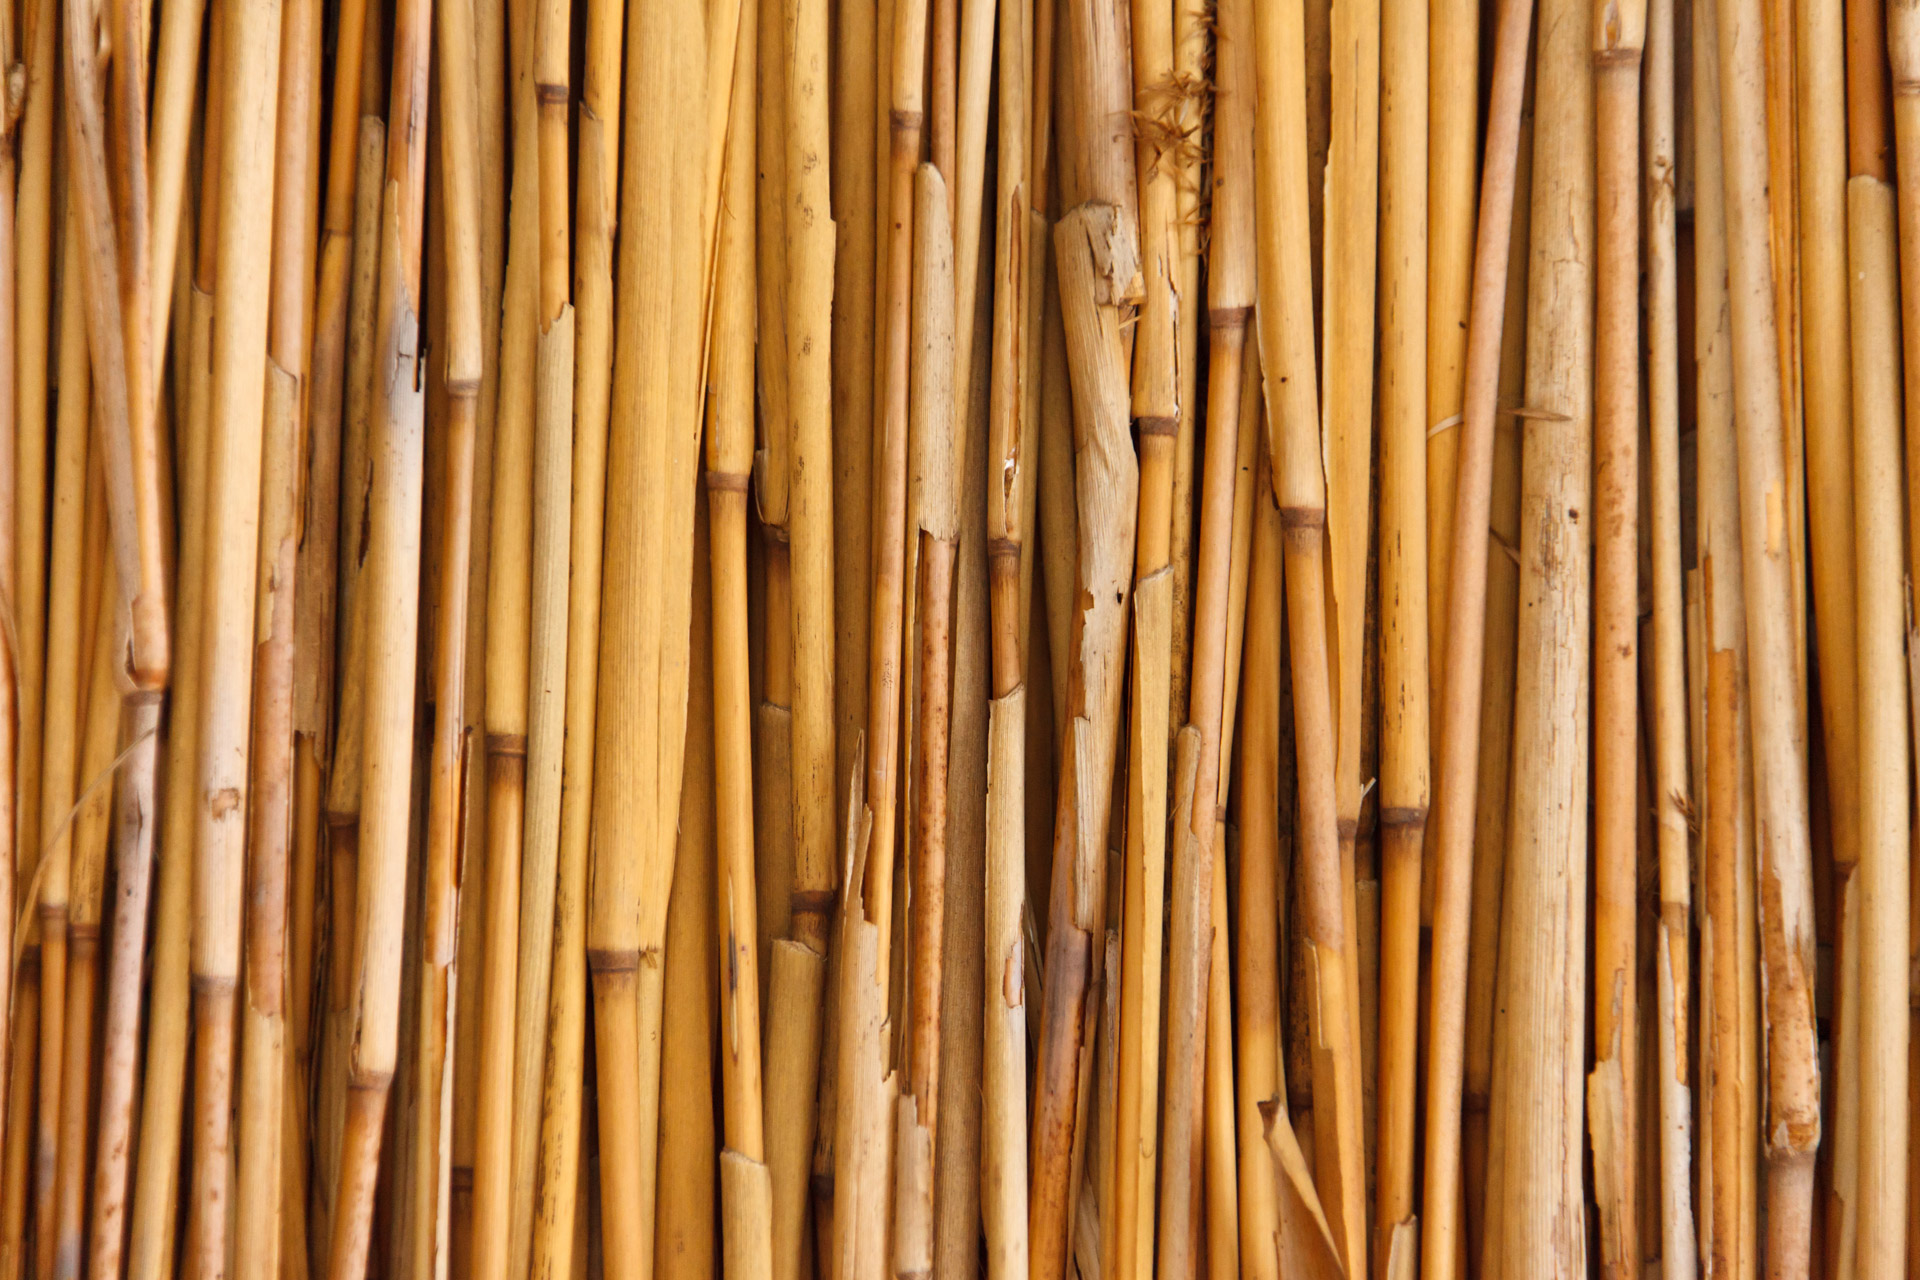 Bamboo Texture Free Stock Photo - Public Domain Pictures